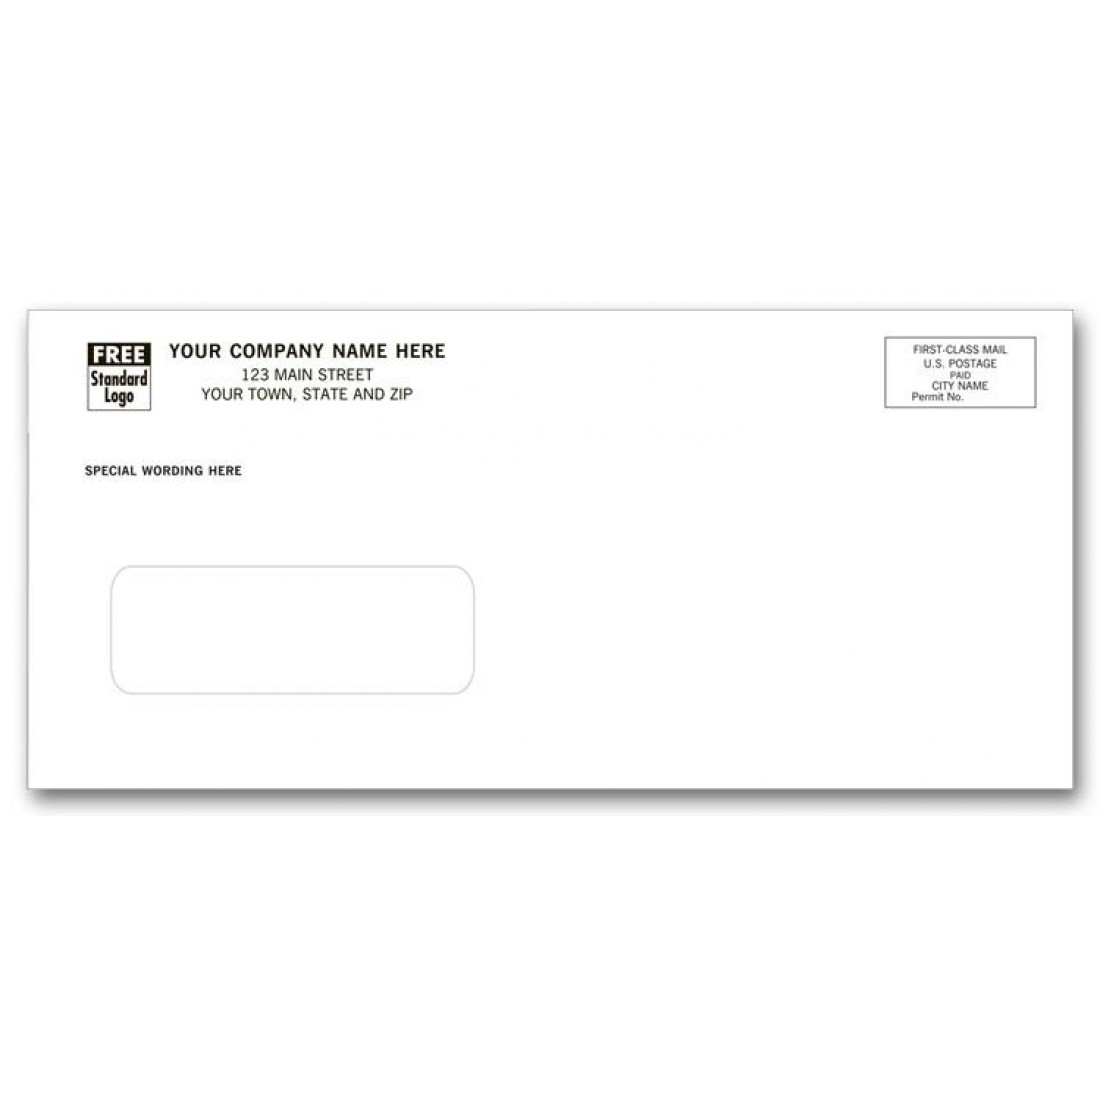 Stylish single window envelope free shipping for 10 window envelope size